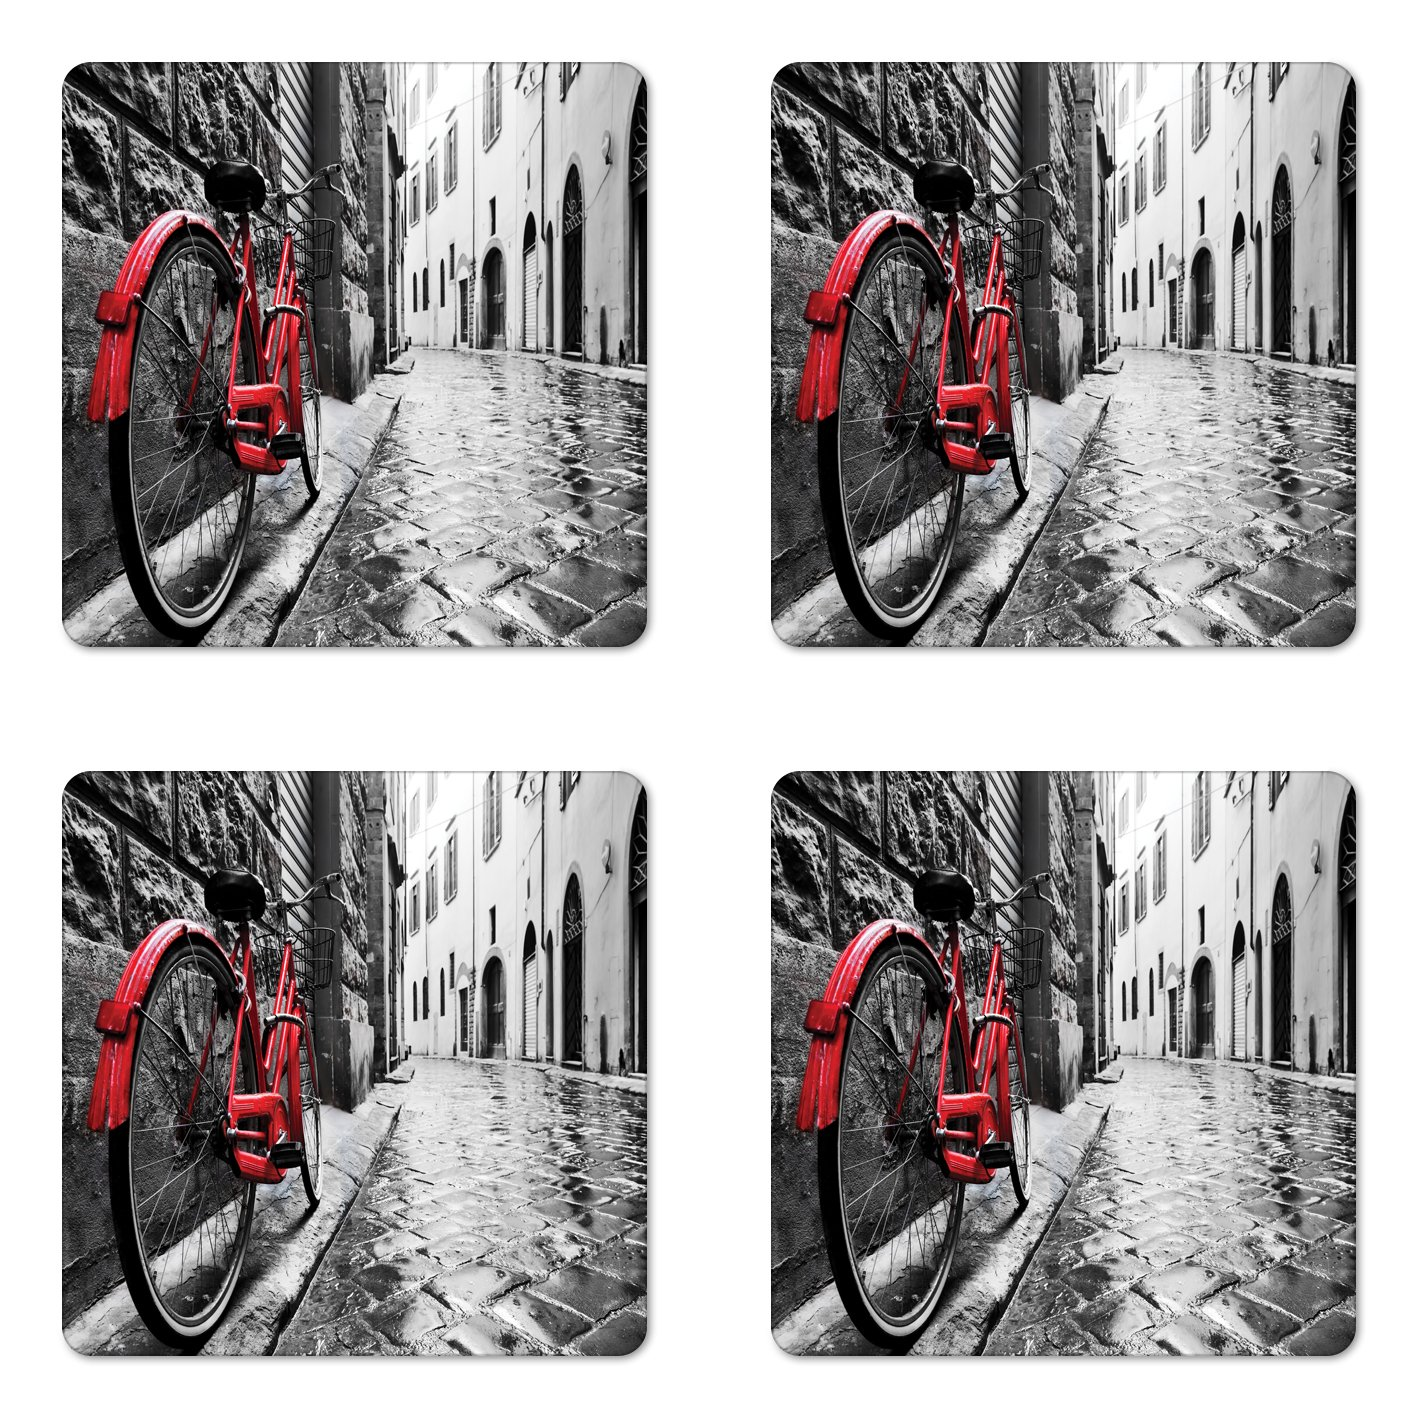 Lunarable Bicycle Coaster Set of Four, Classic Bike on Cobblestone Street in Italian Town Leisure Artistic Photo, Square Hardboard Gloss Coasters for Drinks, Red Black and White